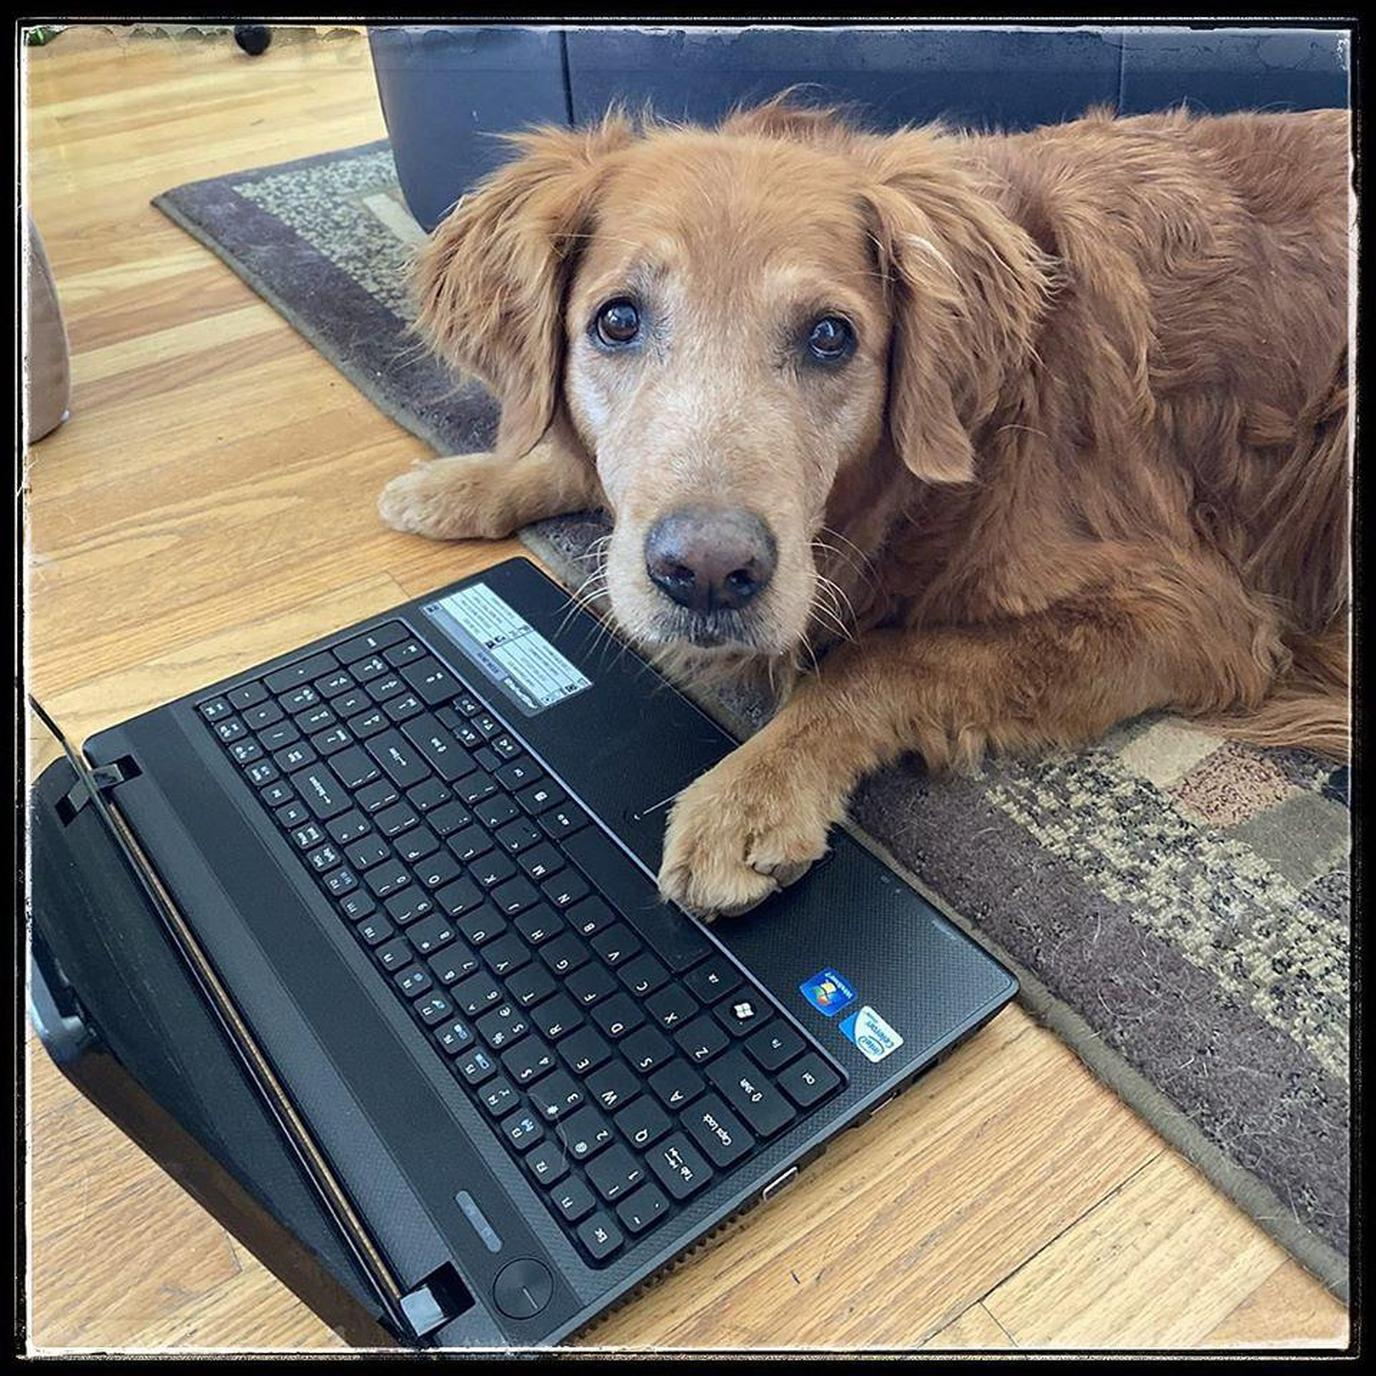 Surf Dog Ricochet is lending a paw with virtual video conferencing and learning.